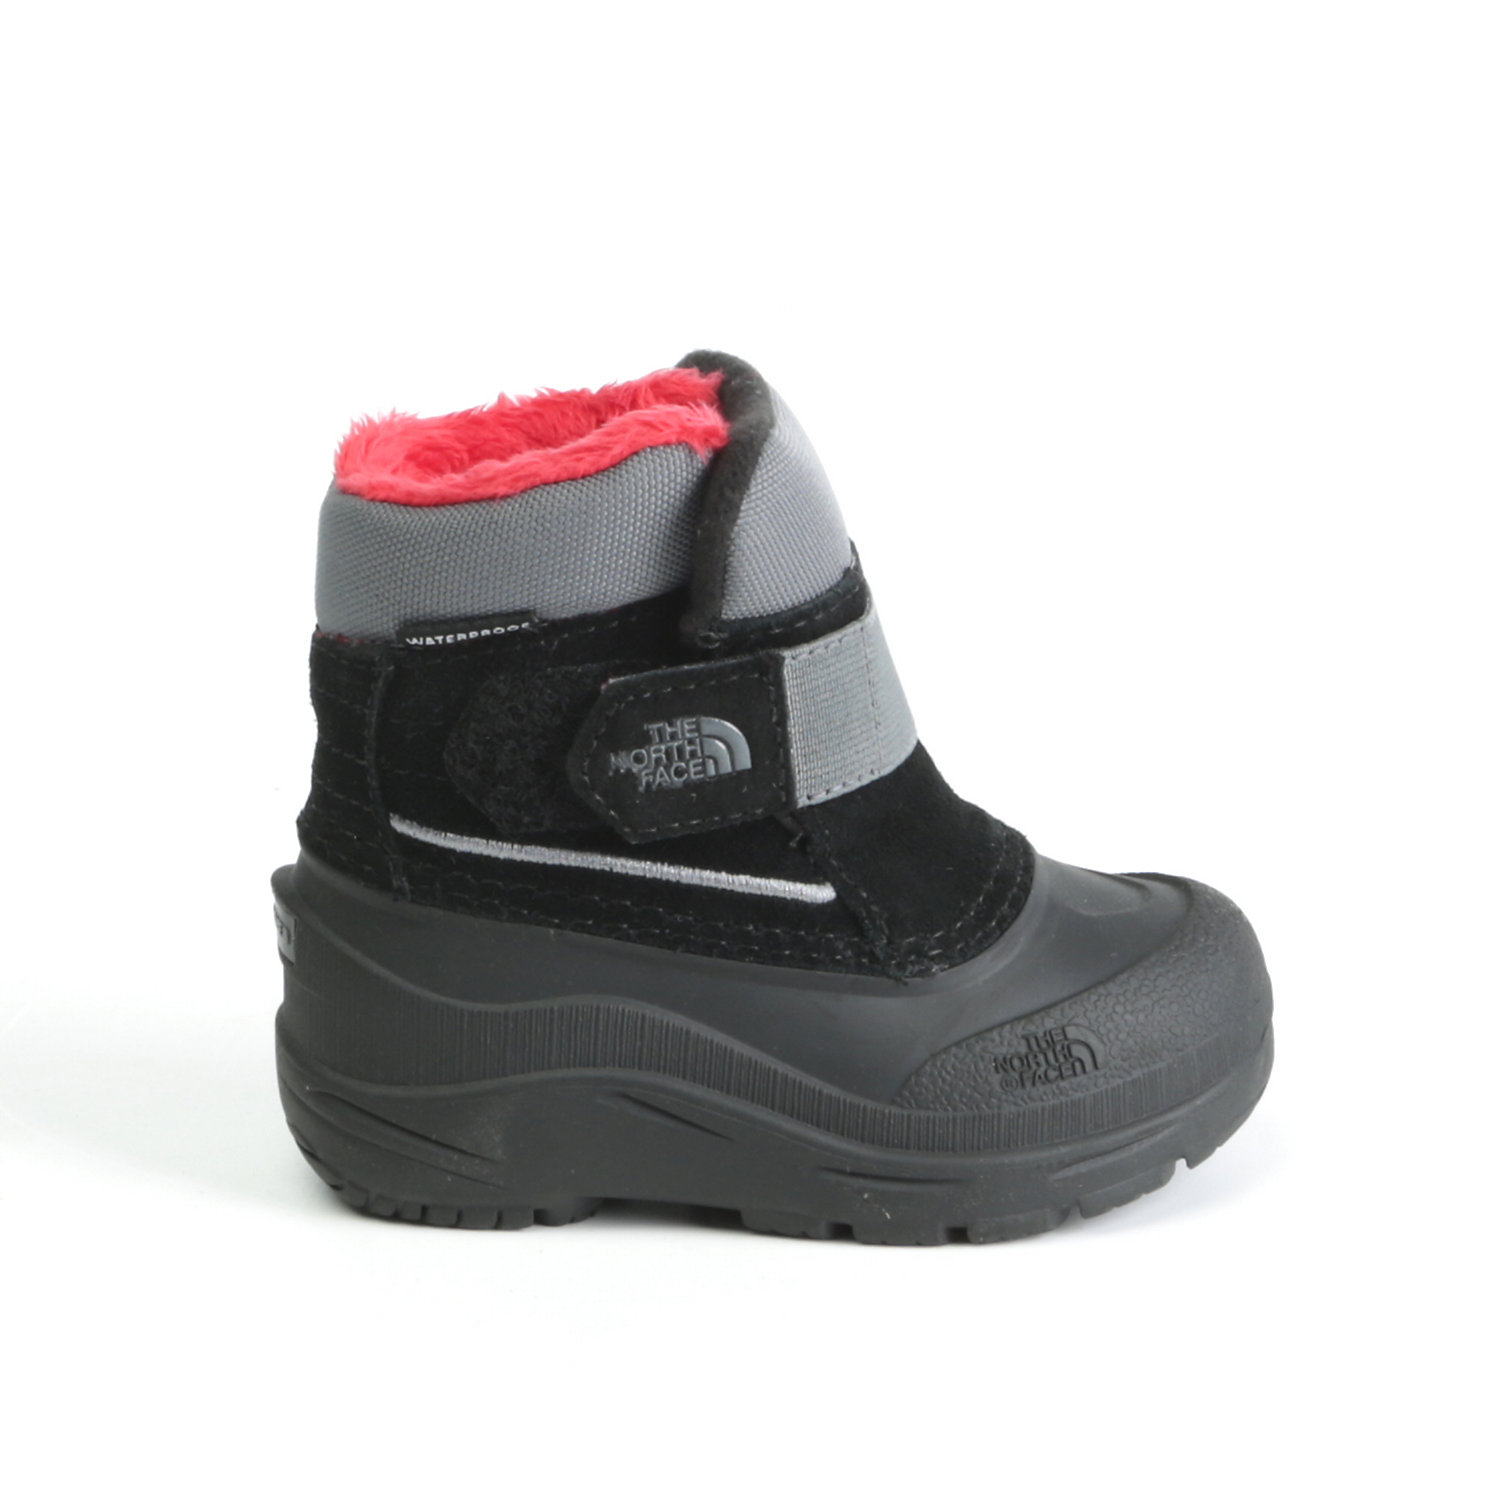 f1452d8f6 The North Face Toddler Alpenglow Boot